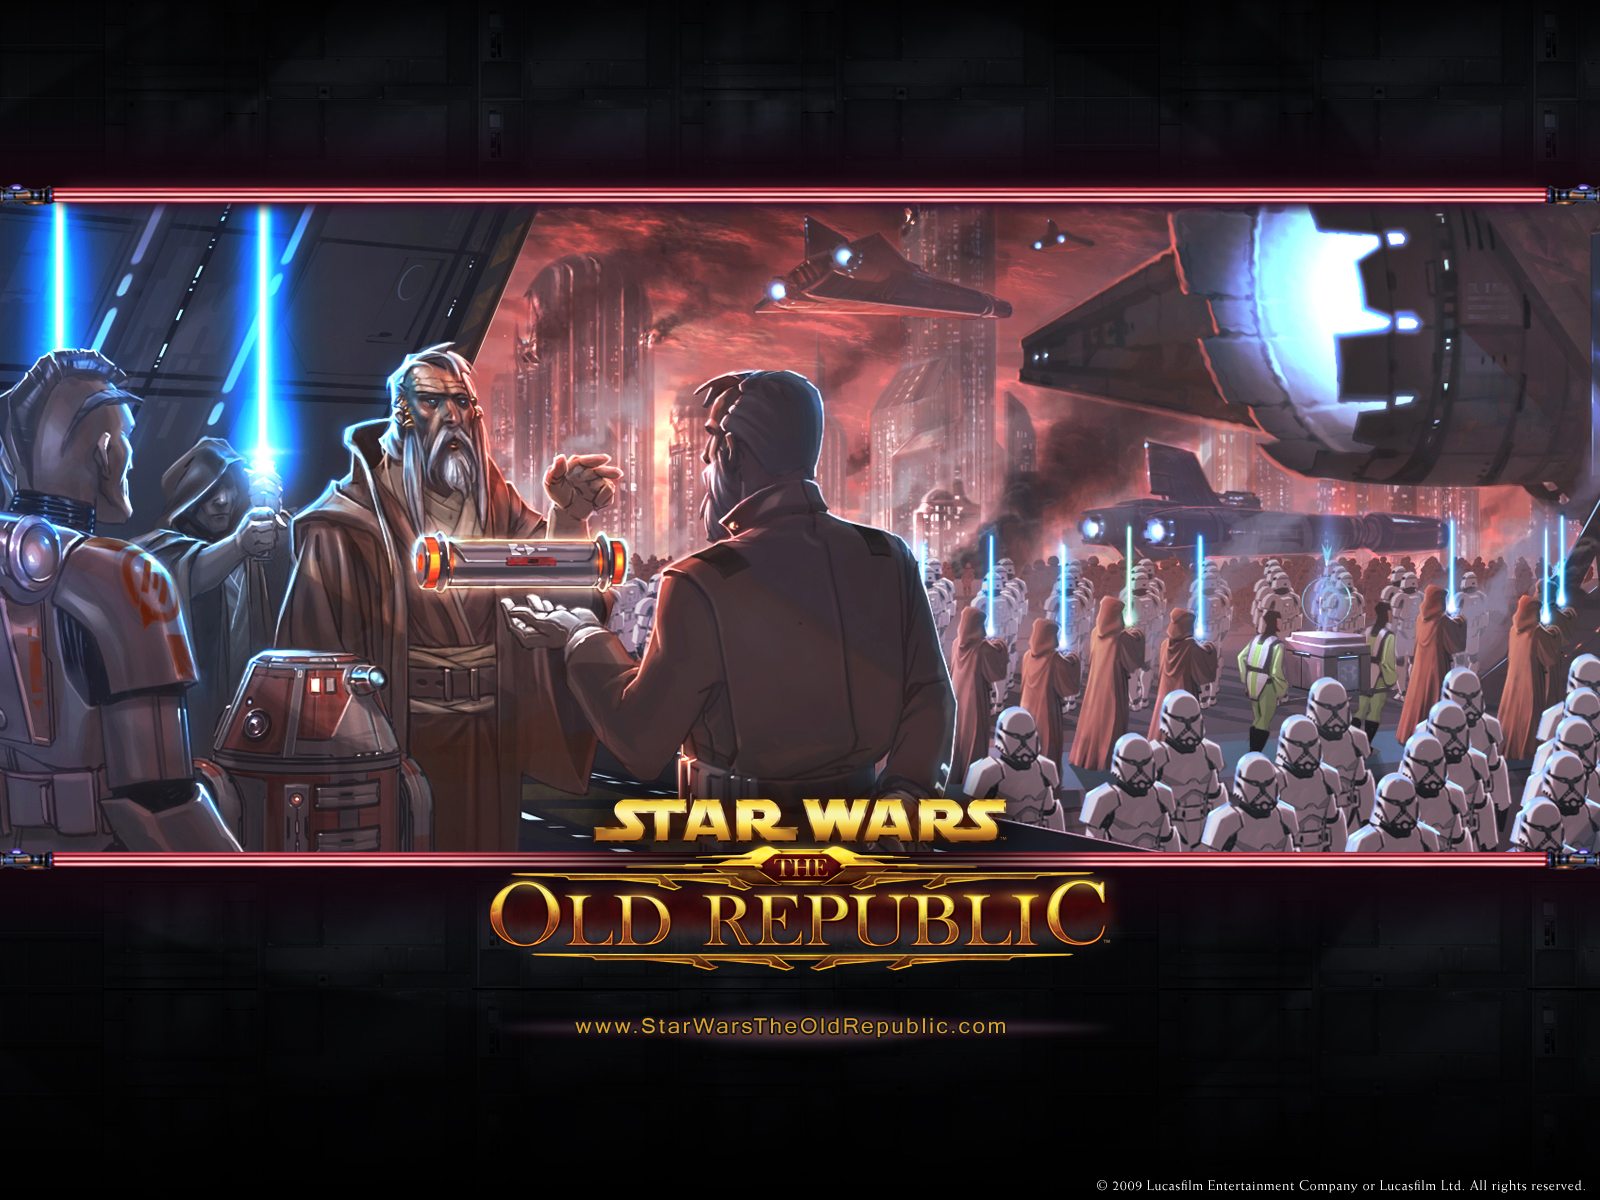 Star Wars The Old Republic Wallpaper Collection IIDownload Wallpaper 1600x1200